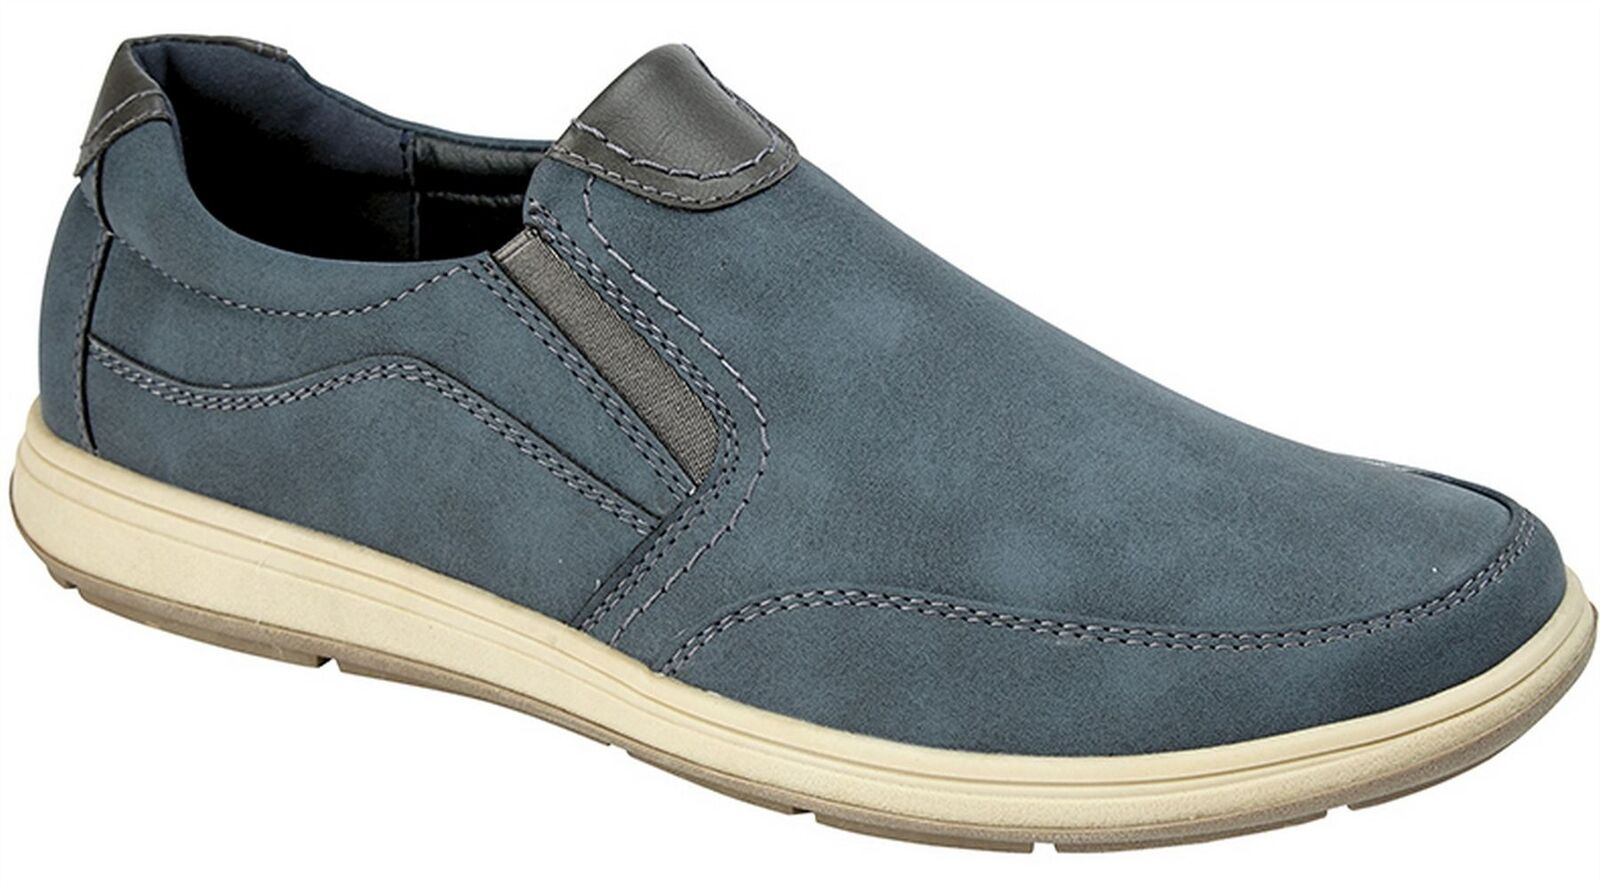 Mens Smart Slip On Lightweight Twin Gusset Casual Smart Mens Leisure Shoes Size 6-12 6afcfc